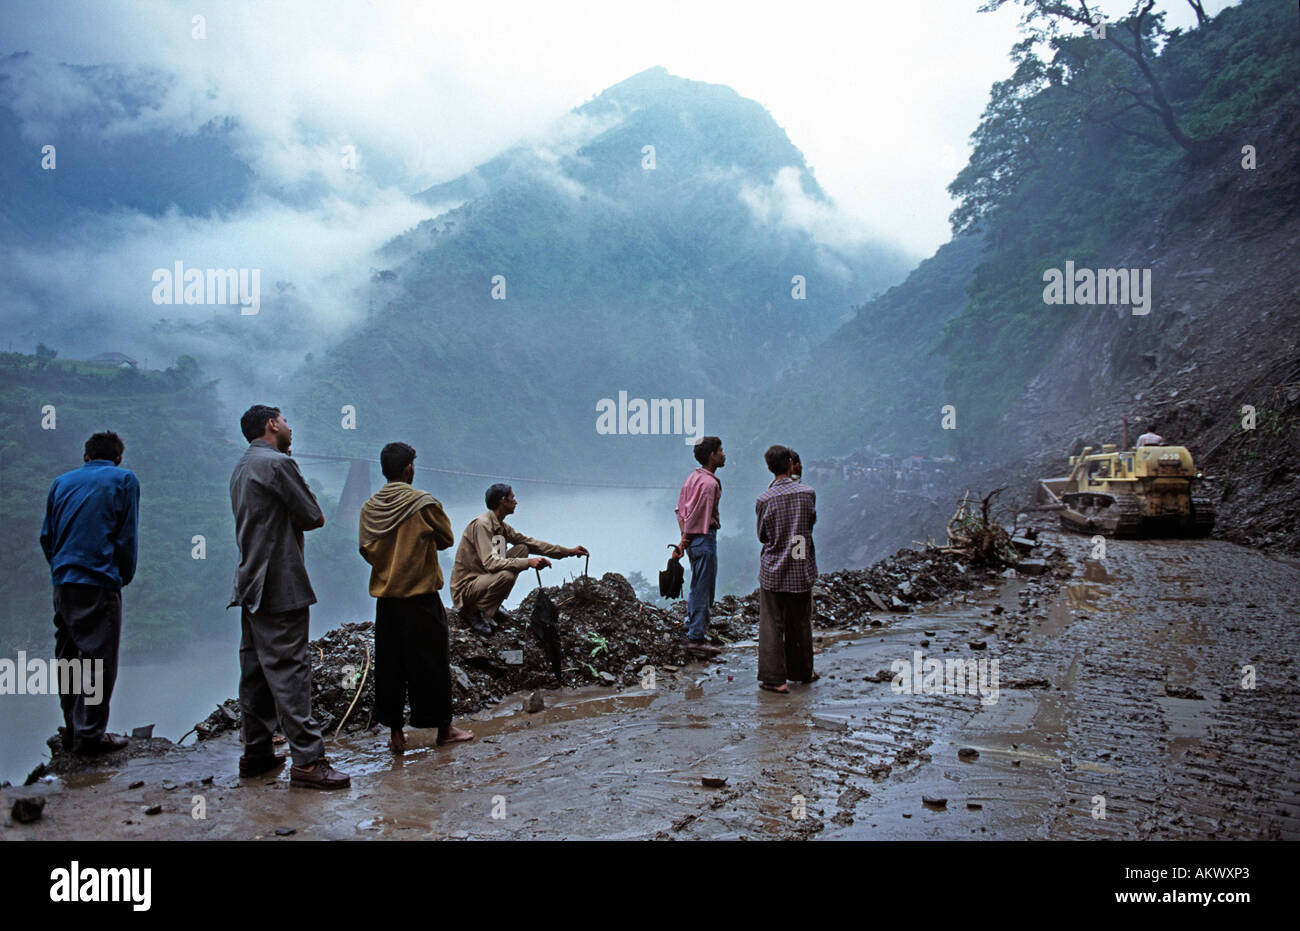 A devastating landslide has swept the road away. A bulldozer attempts to reconnect the highway from Manali to Delhi. Himachal P - Stock Image